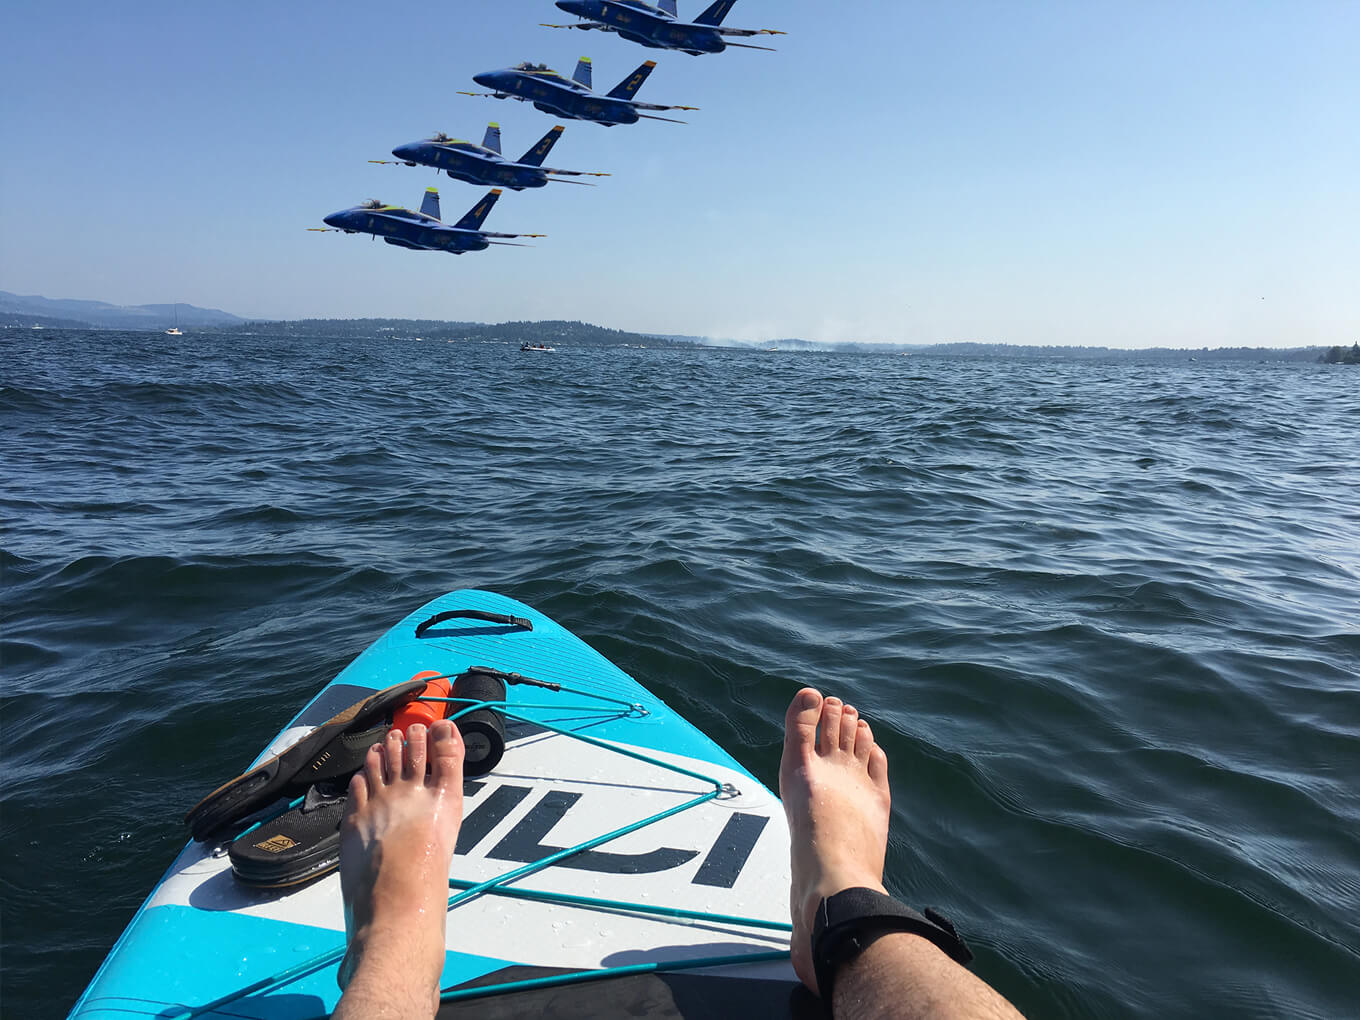 Paddle boarding with the Blue Angels